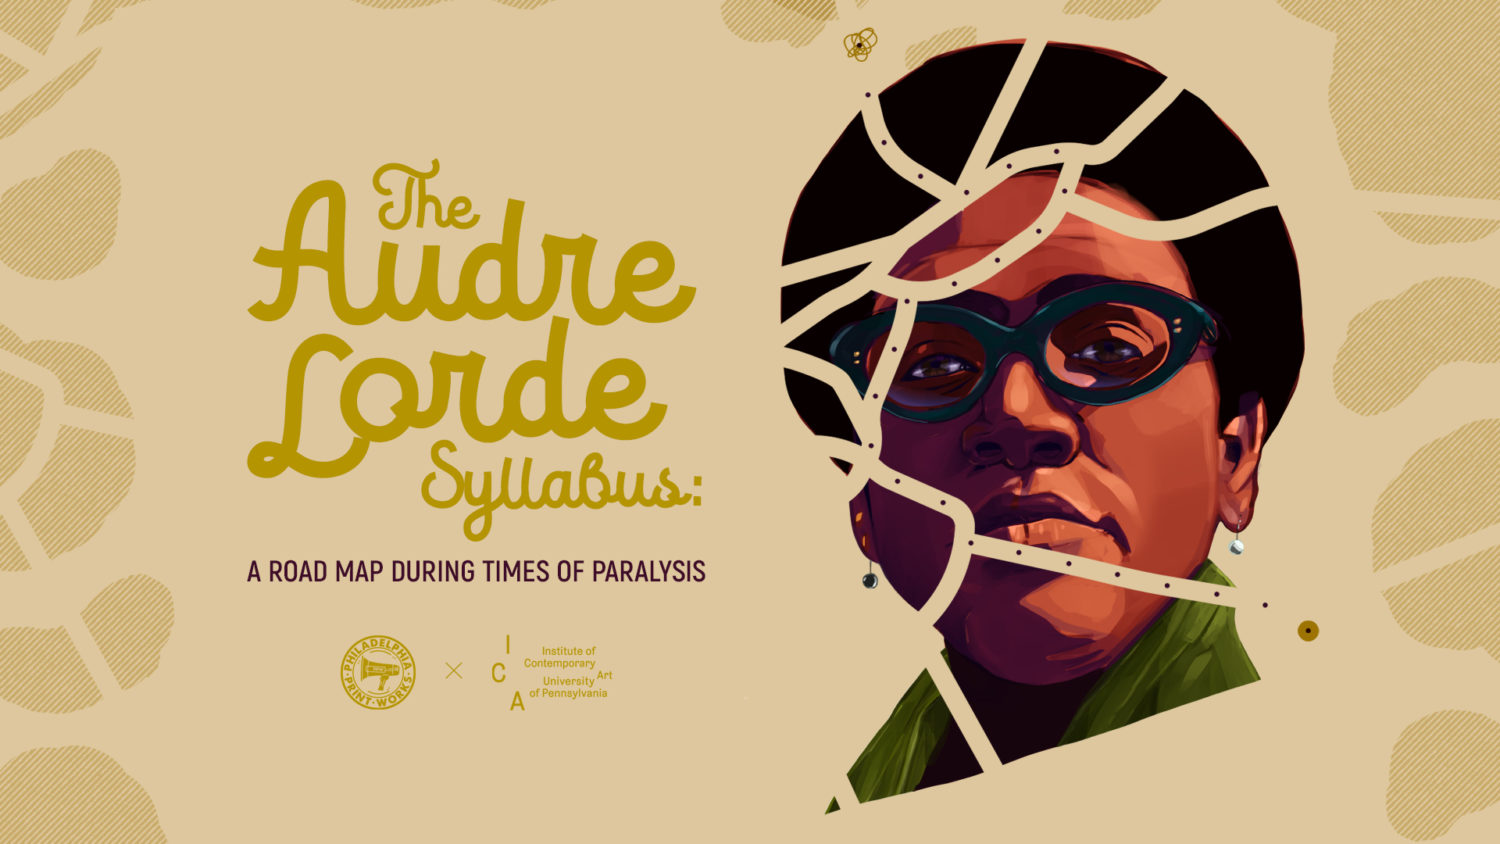 A picture of Audre Lorde a grid of roads across there face